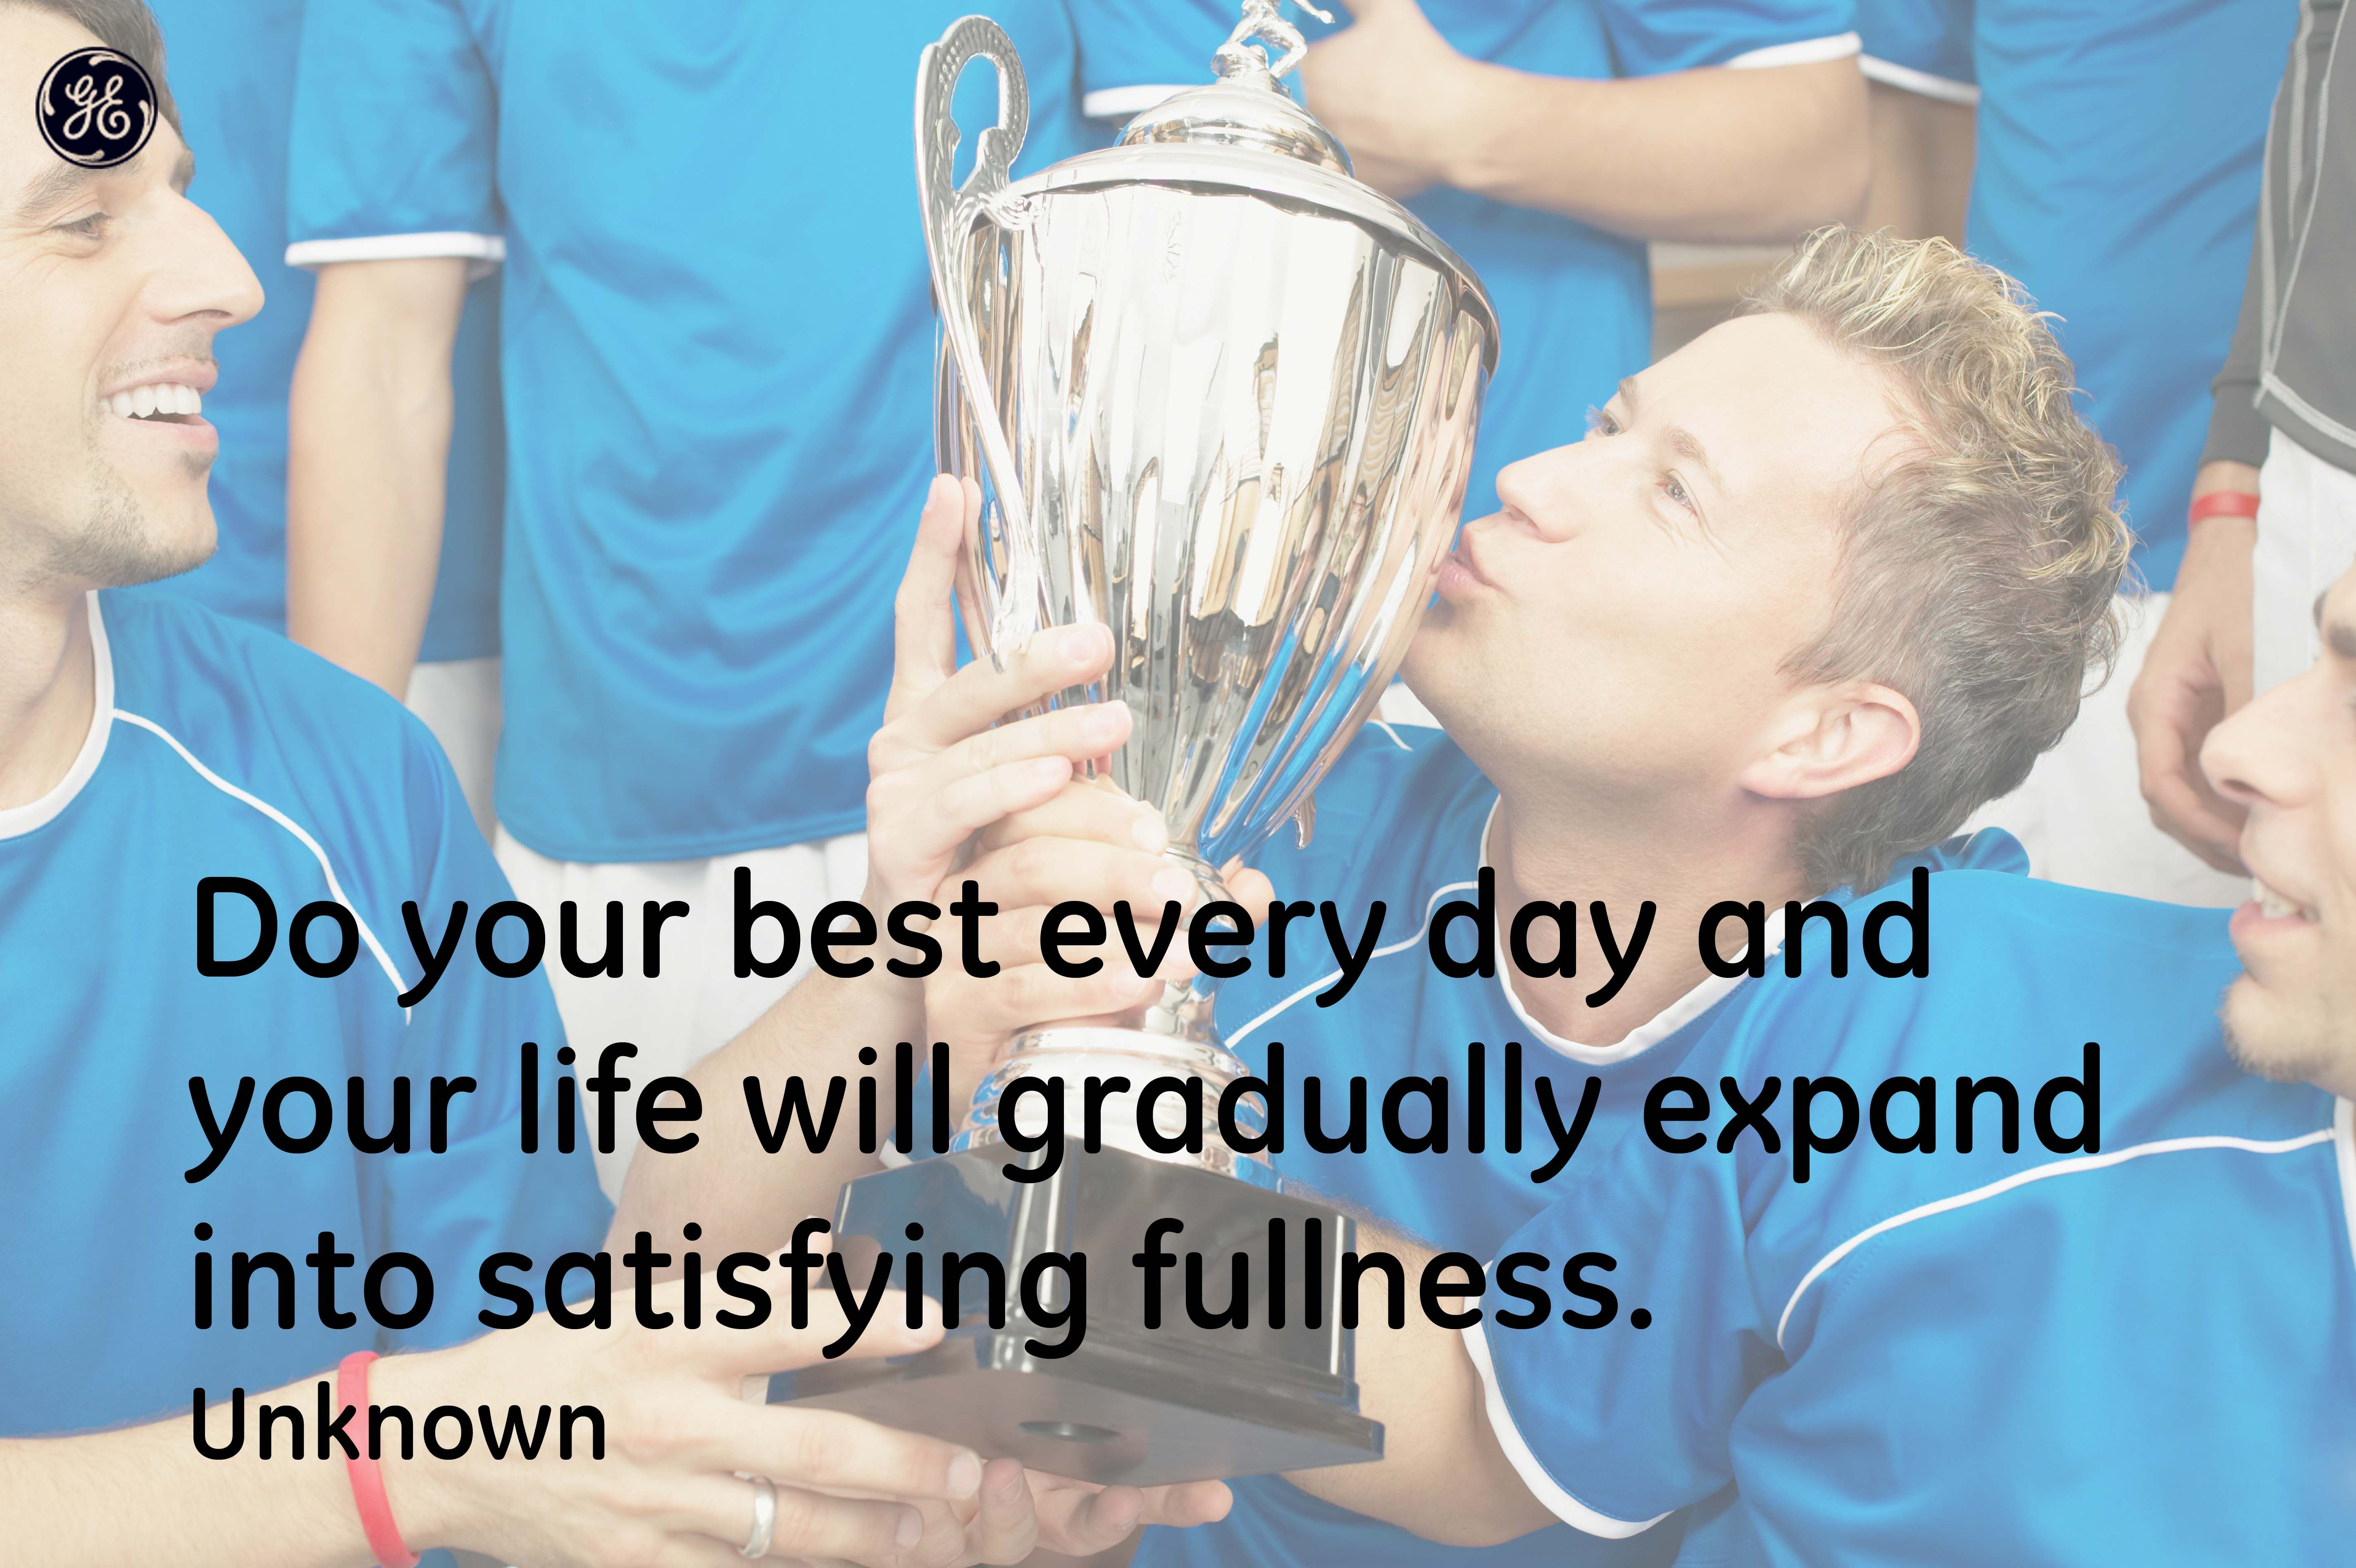 Do Your Best Every Day Quotes Gehealthcare Healthcare System Ge Healthcare Health Care